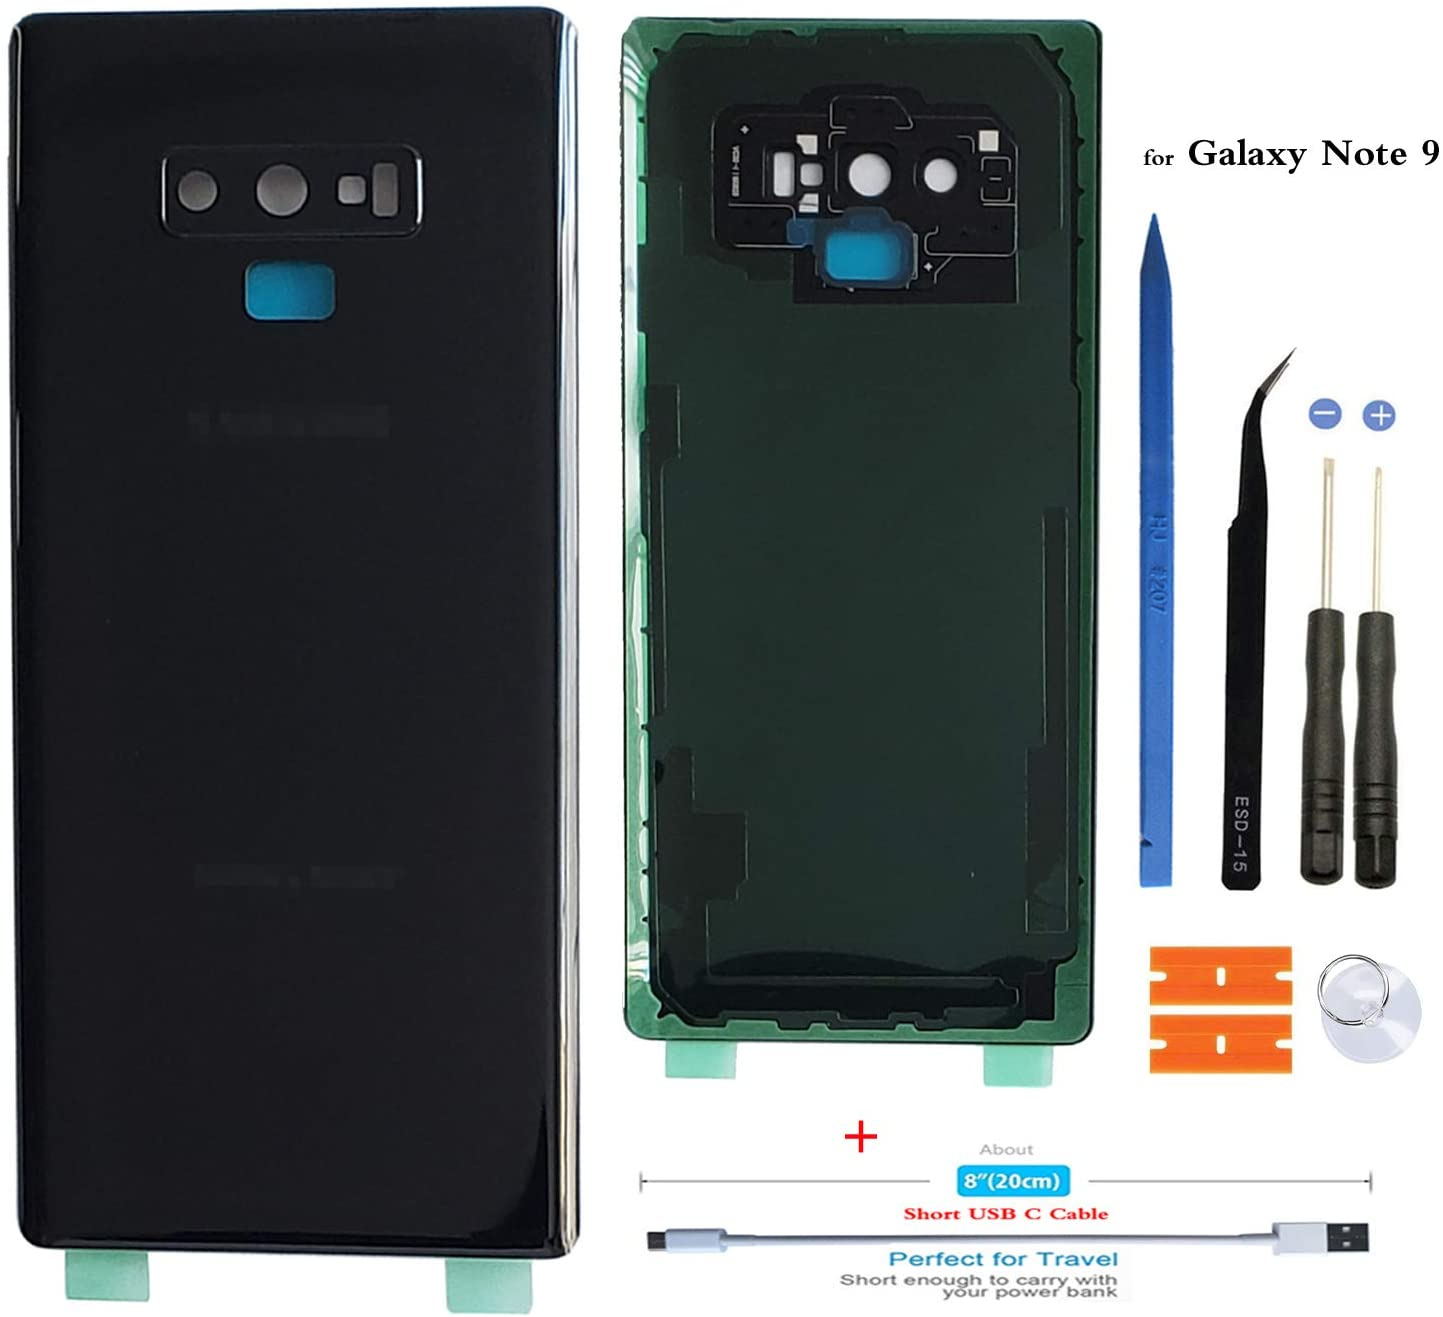 Slimall Battery Back Glass Rear Cover Housing Door Replacement for Samsung Galaxy Note 9 N960 with Camera Lens/Adhensive, Frame Tape + Short USB c Charging Cable (Midnight Black)